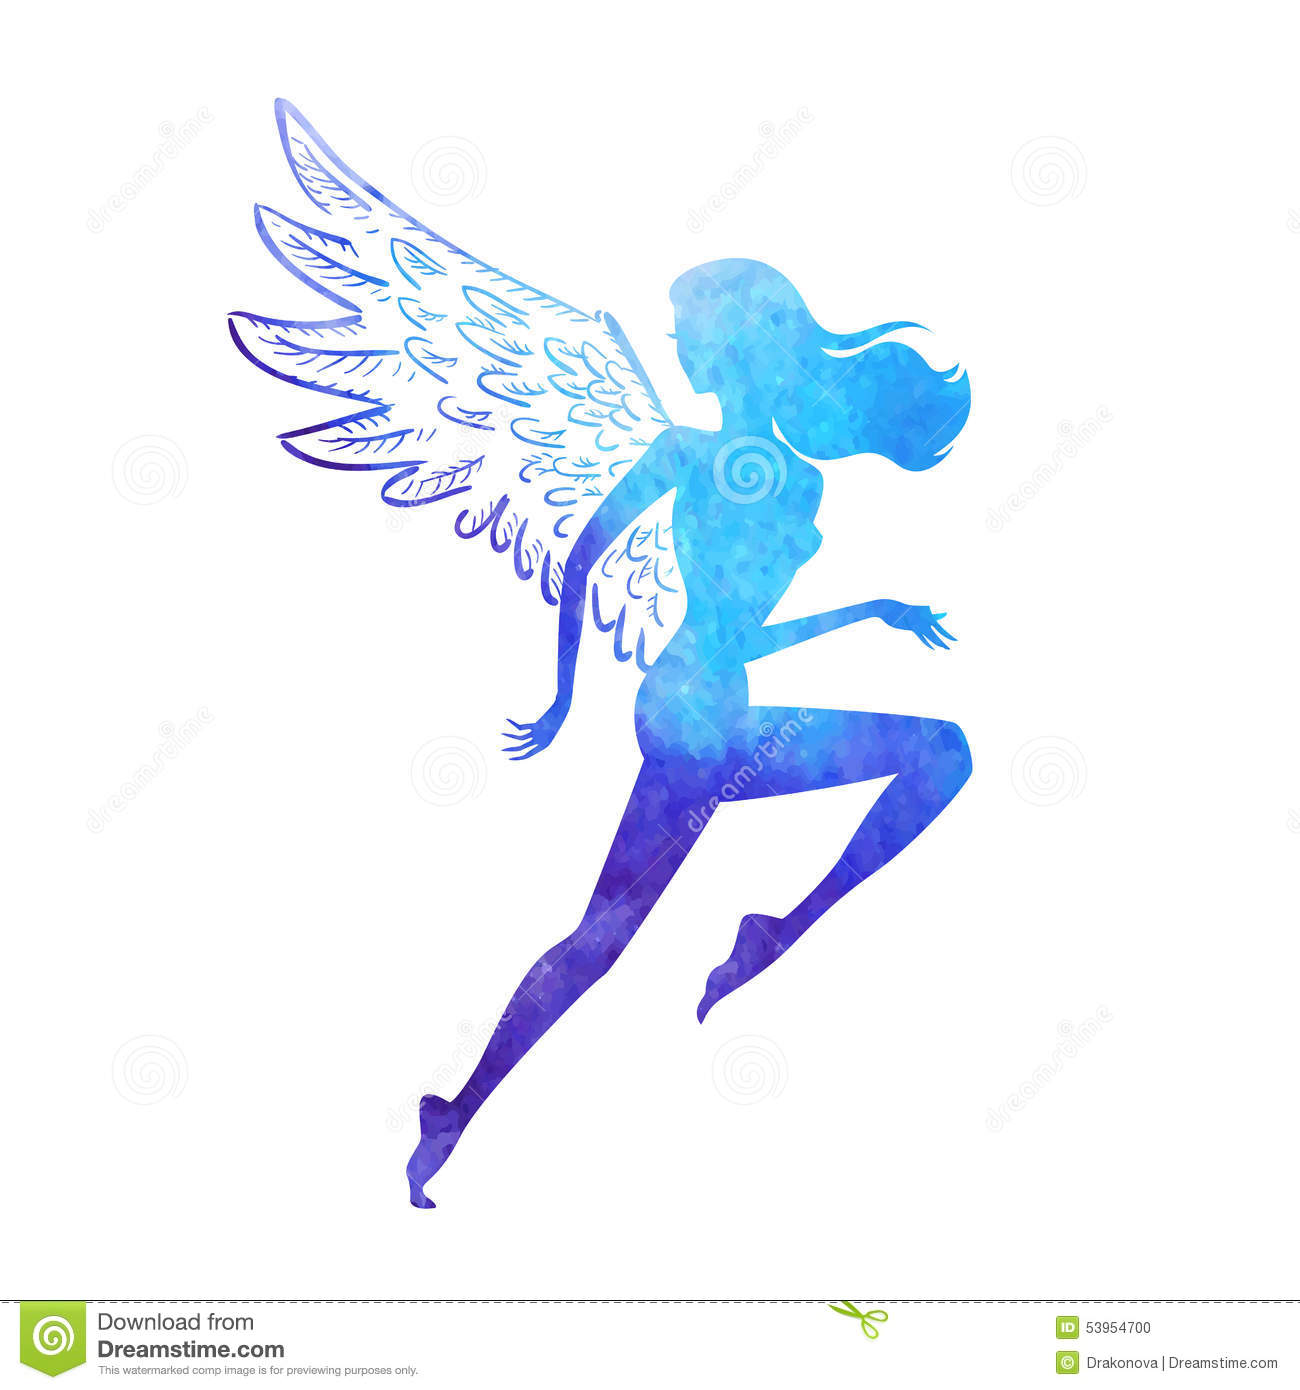 ... running woman silhouette of watercolor paint texture shape with wings